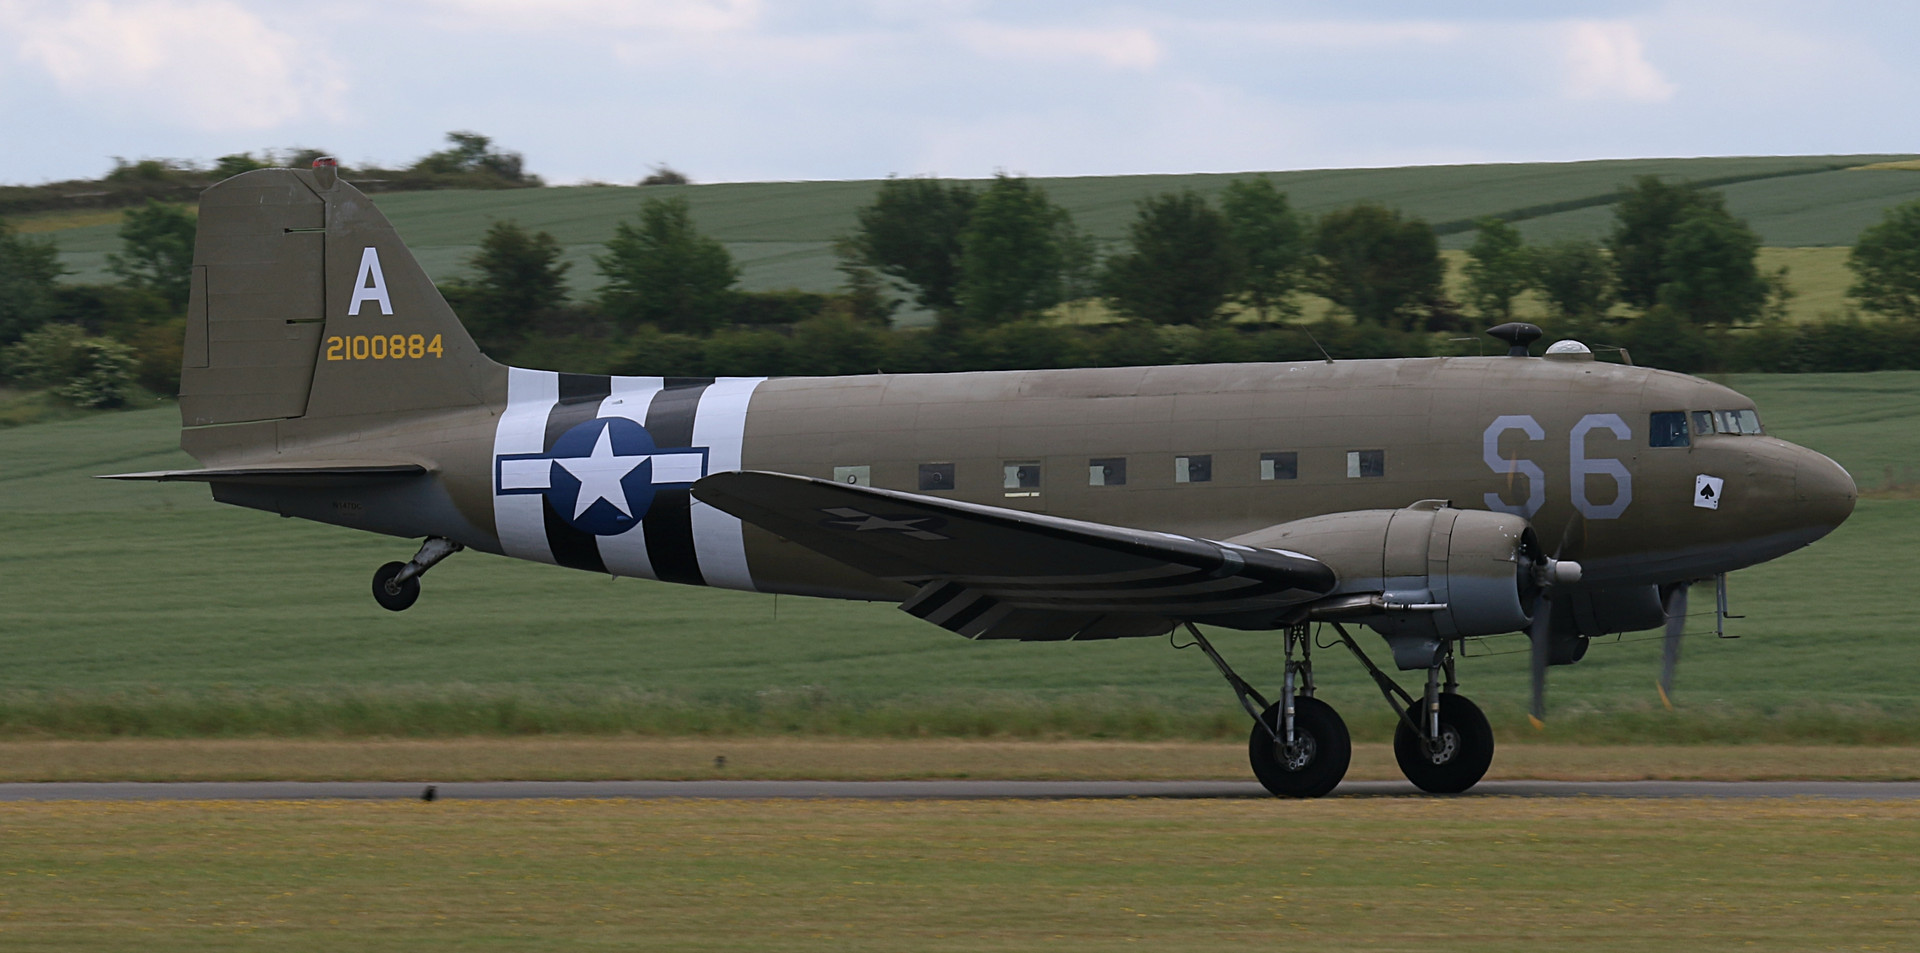 D-Day Daks over Duxford June 2019 (34).J